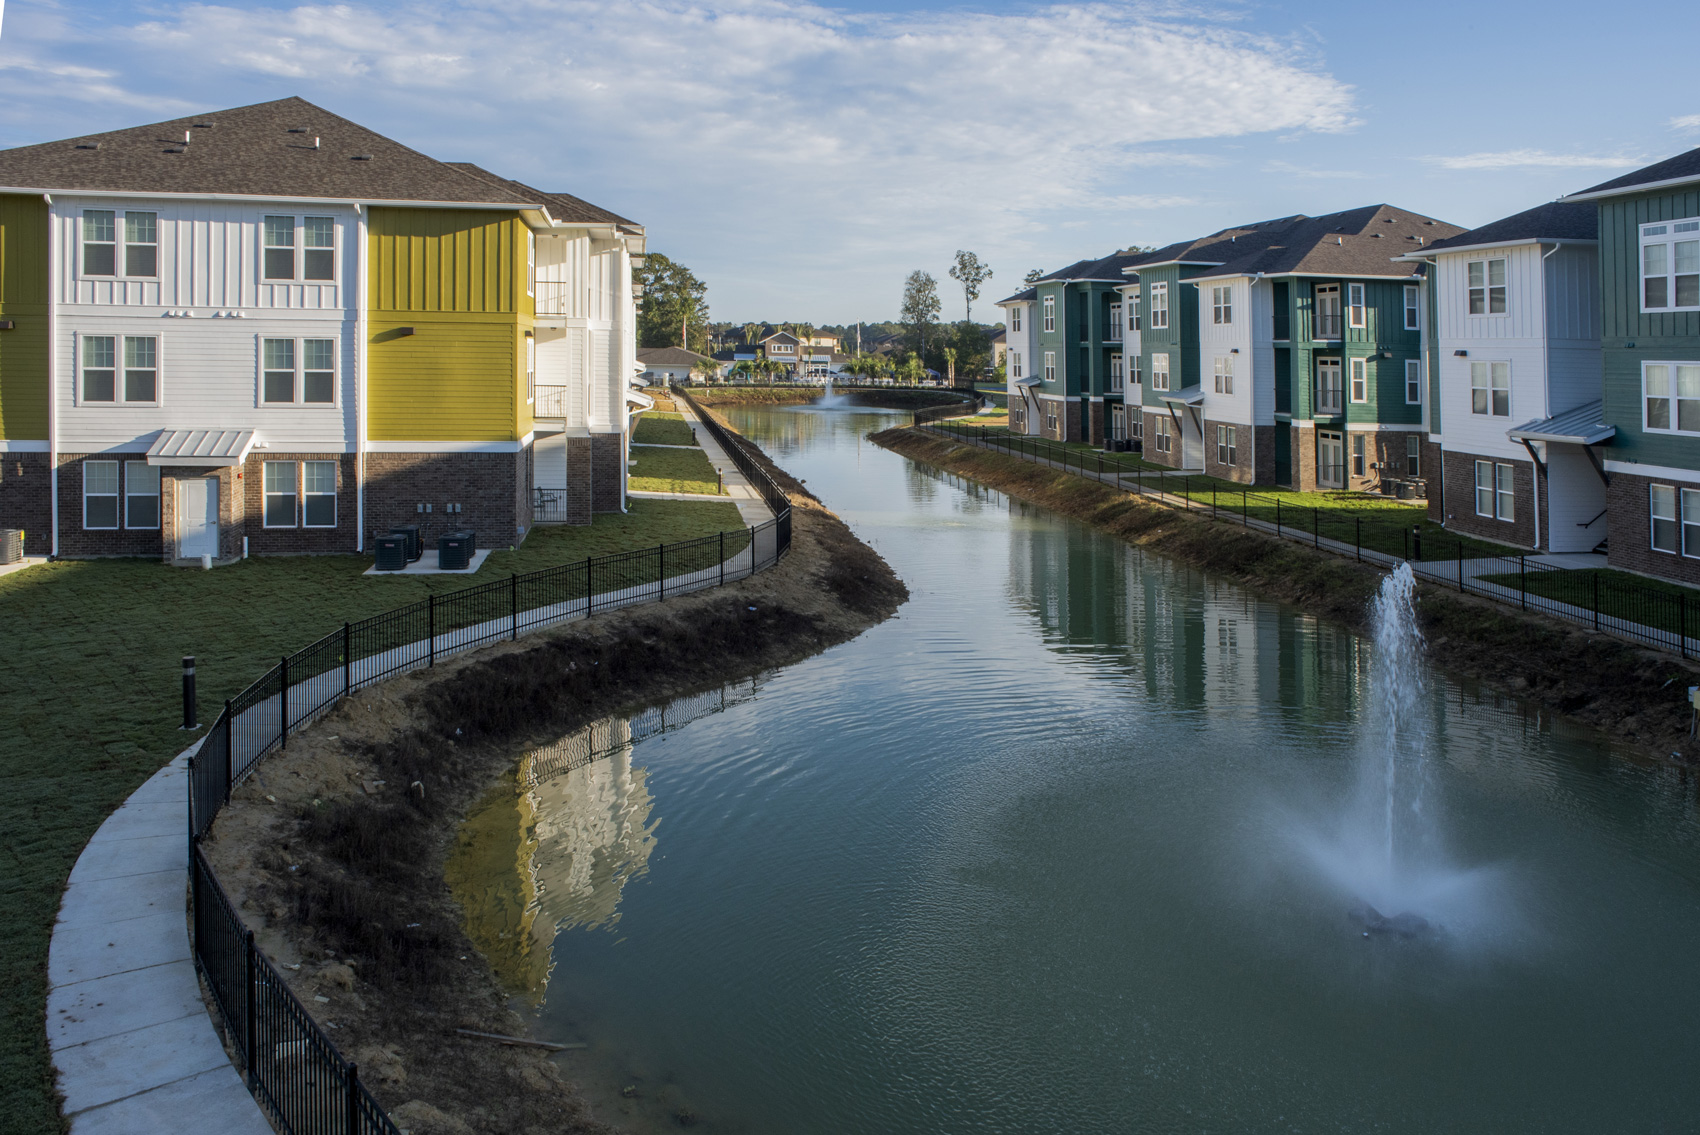 New Luxury Apartments at The Palms at Juban Lakes Apartments in Denham Springs, Louisiana